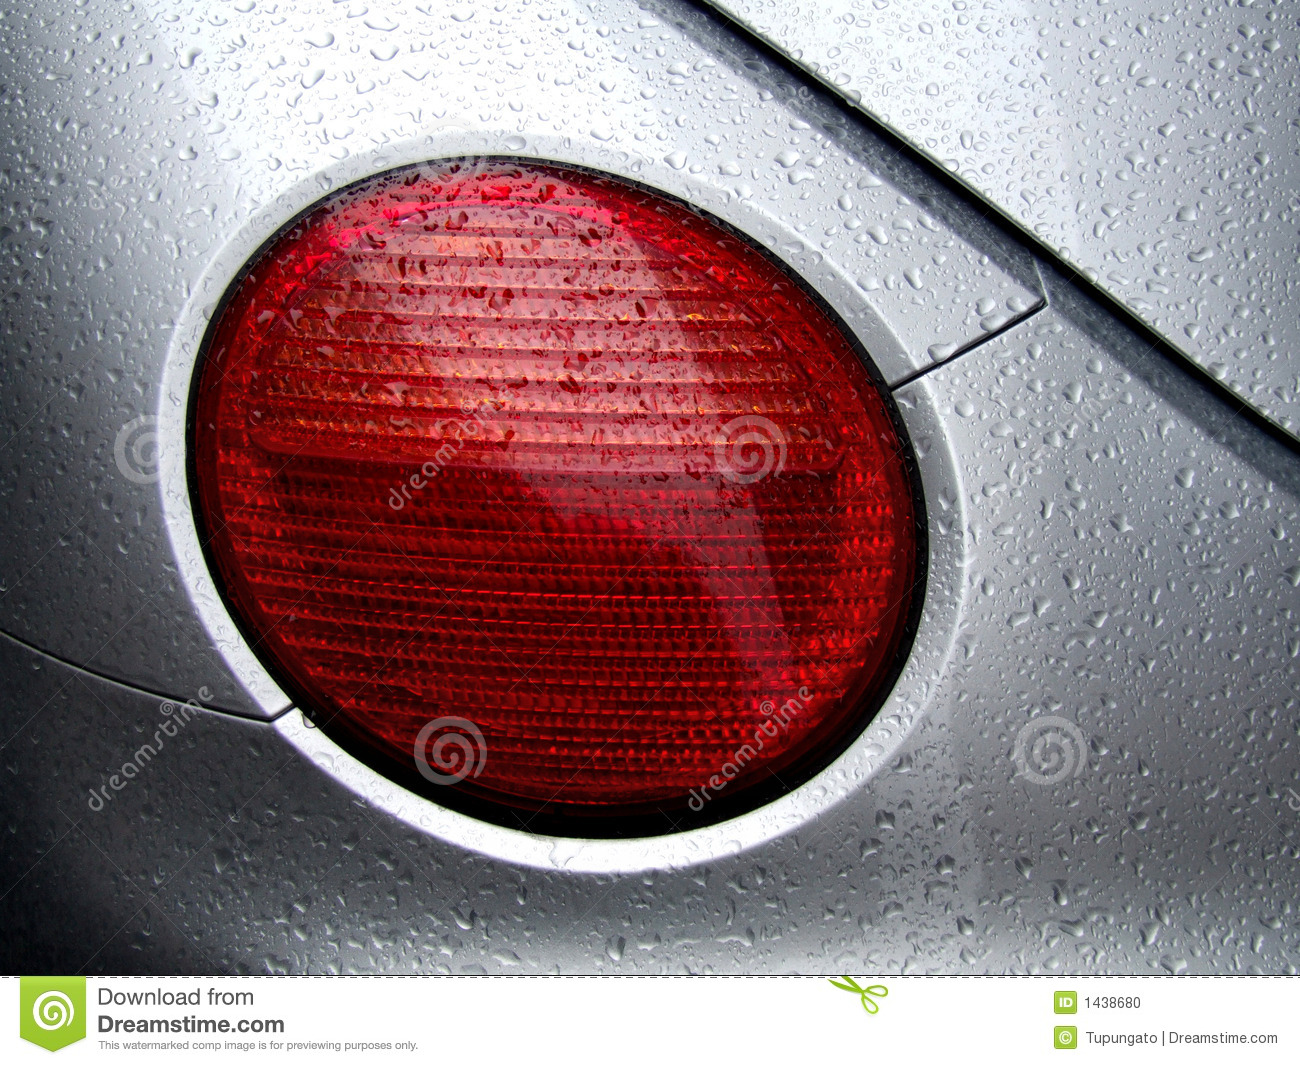 Auto Paint Prices >> Rear Car Light And Water Dew Drops Stock Photo - Image: 1438680